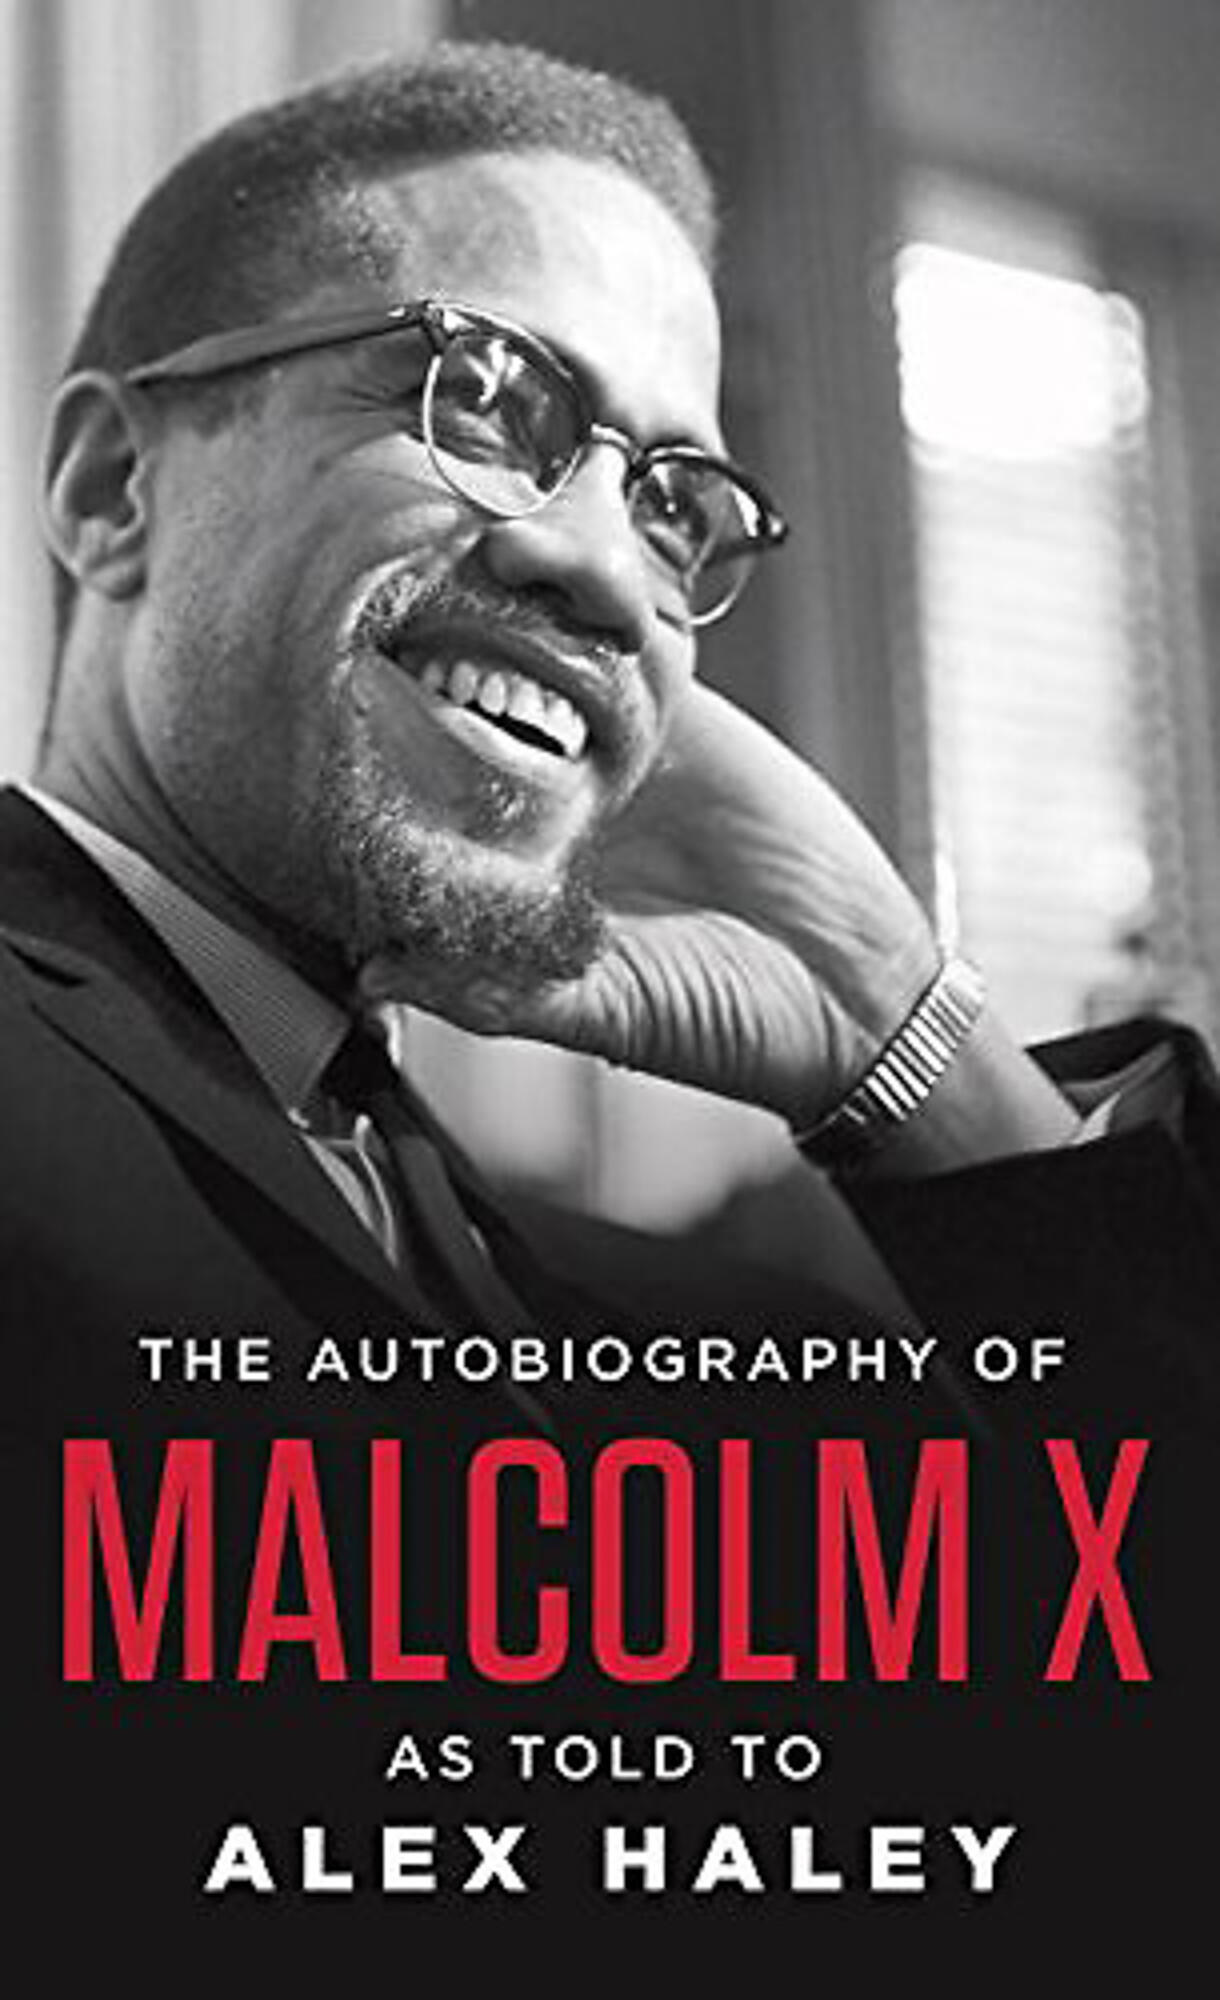 011-media-for-the-moment-the-autobiography-of-malcolm-x